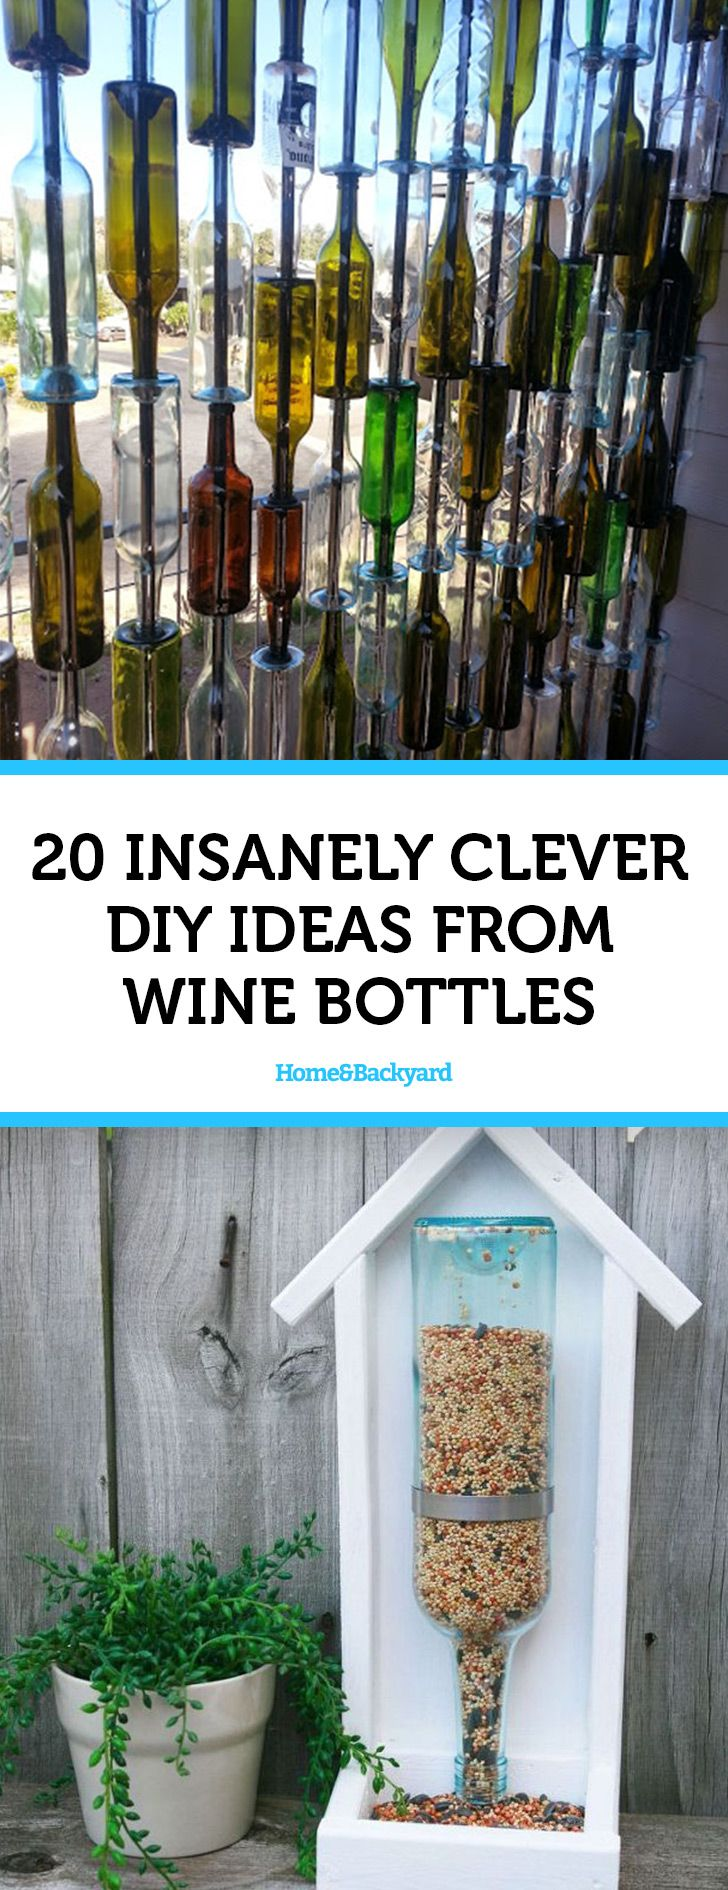 We featured 20 of our all time favorited DIY projects and crafts made from wine bottles. Click on image to see them on HomeBackyard.com